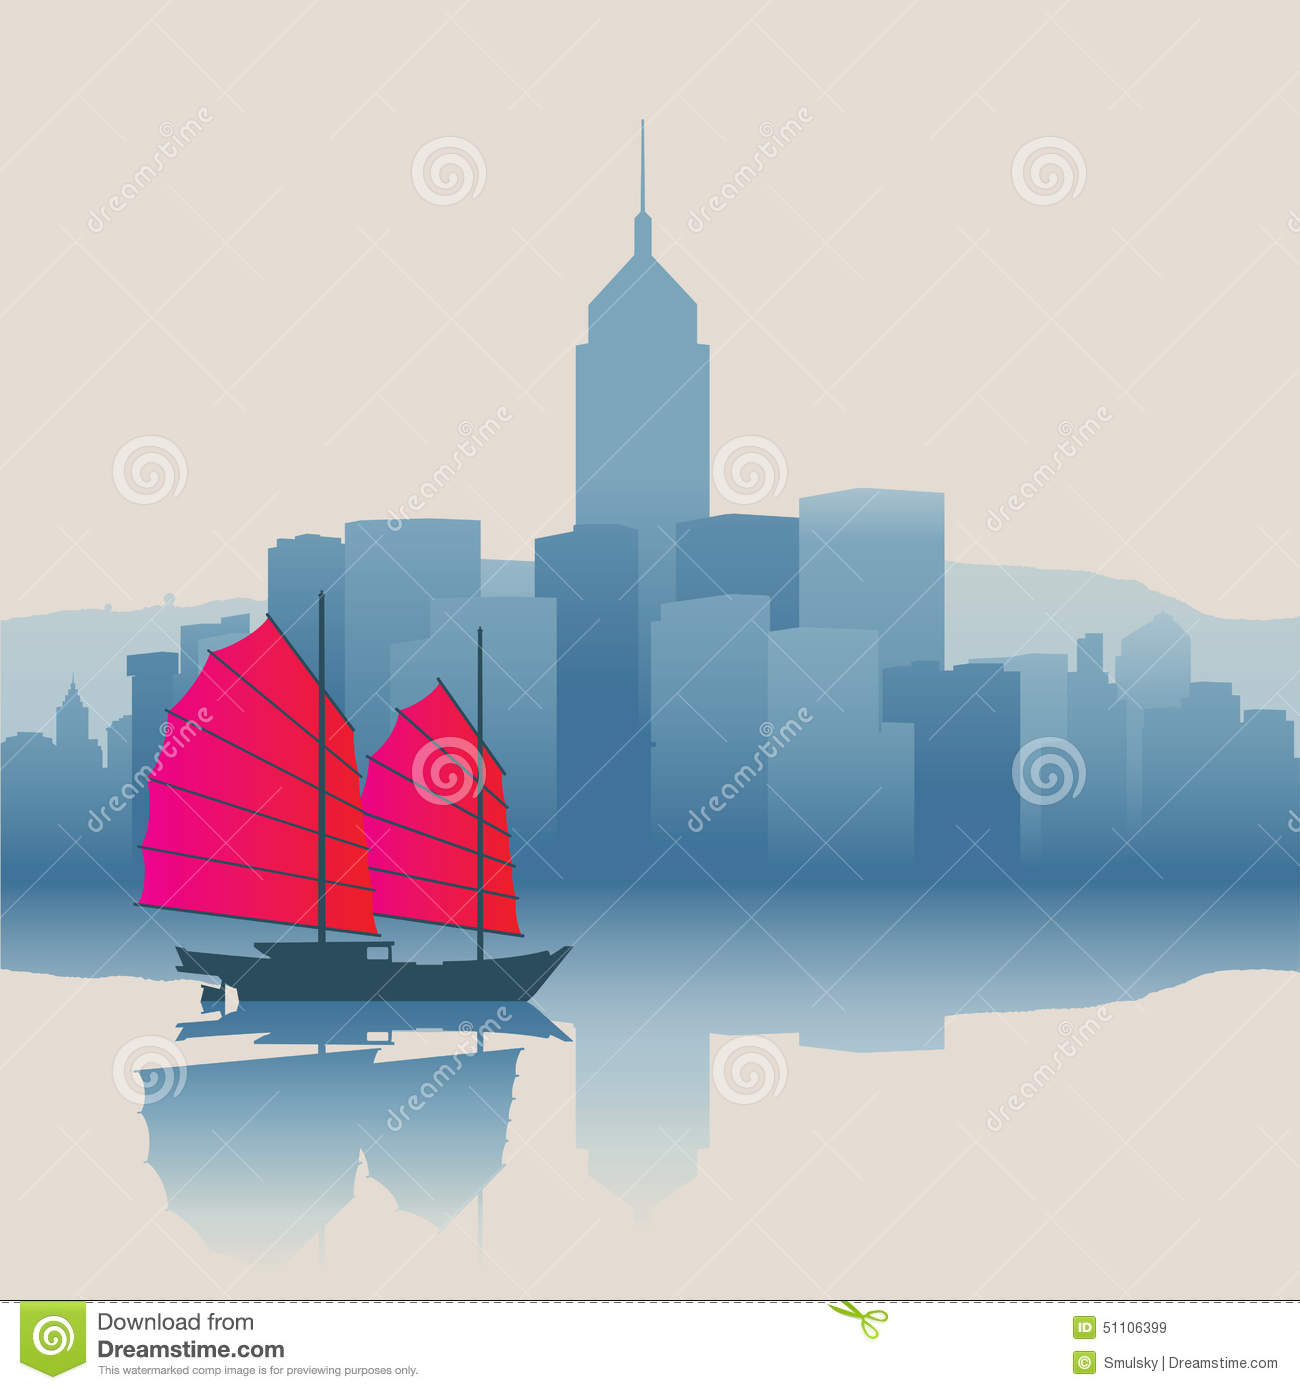 Hong Kong Harbour With Tourist Junk Stock Vector - Image: 51106399